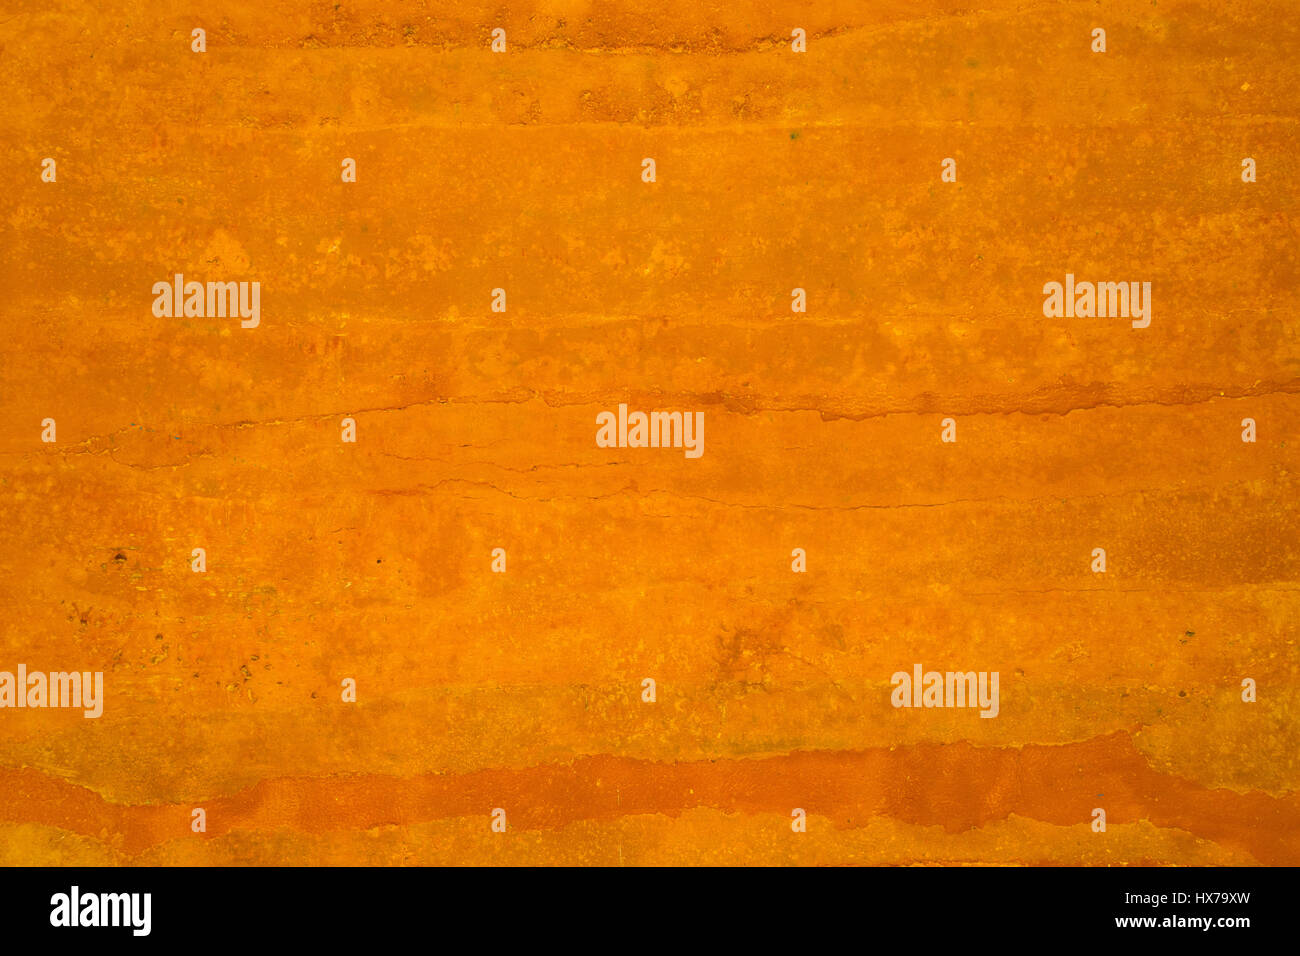 Grungy vintage orange polished concrete background texture Stock Photo